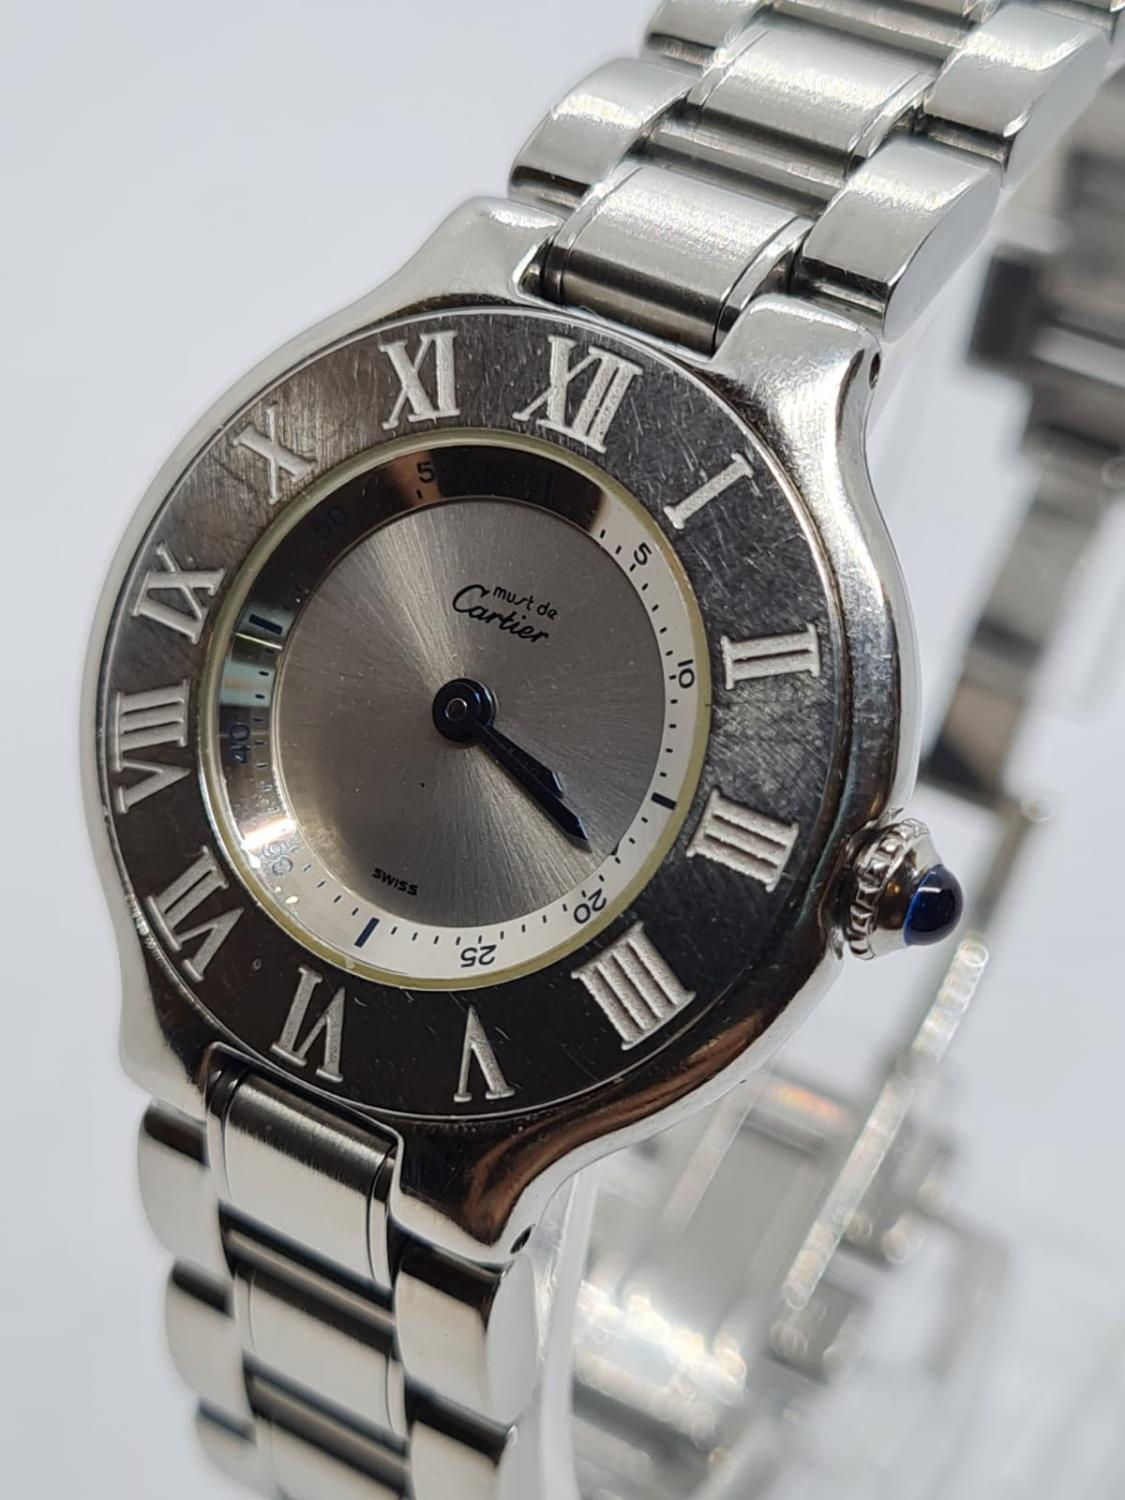 Must de Cartier Ladies WATCH with round face and Roman Numerals. 28mm case. - Image 3 of 5